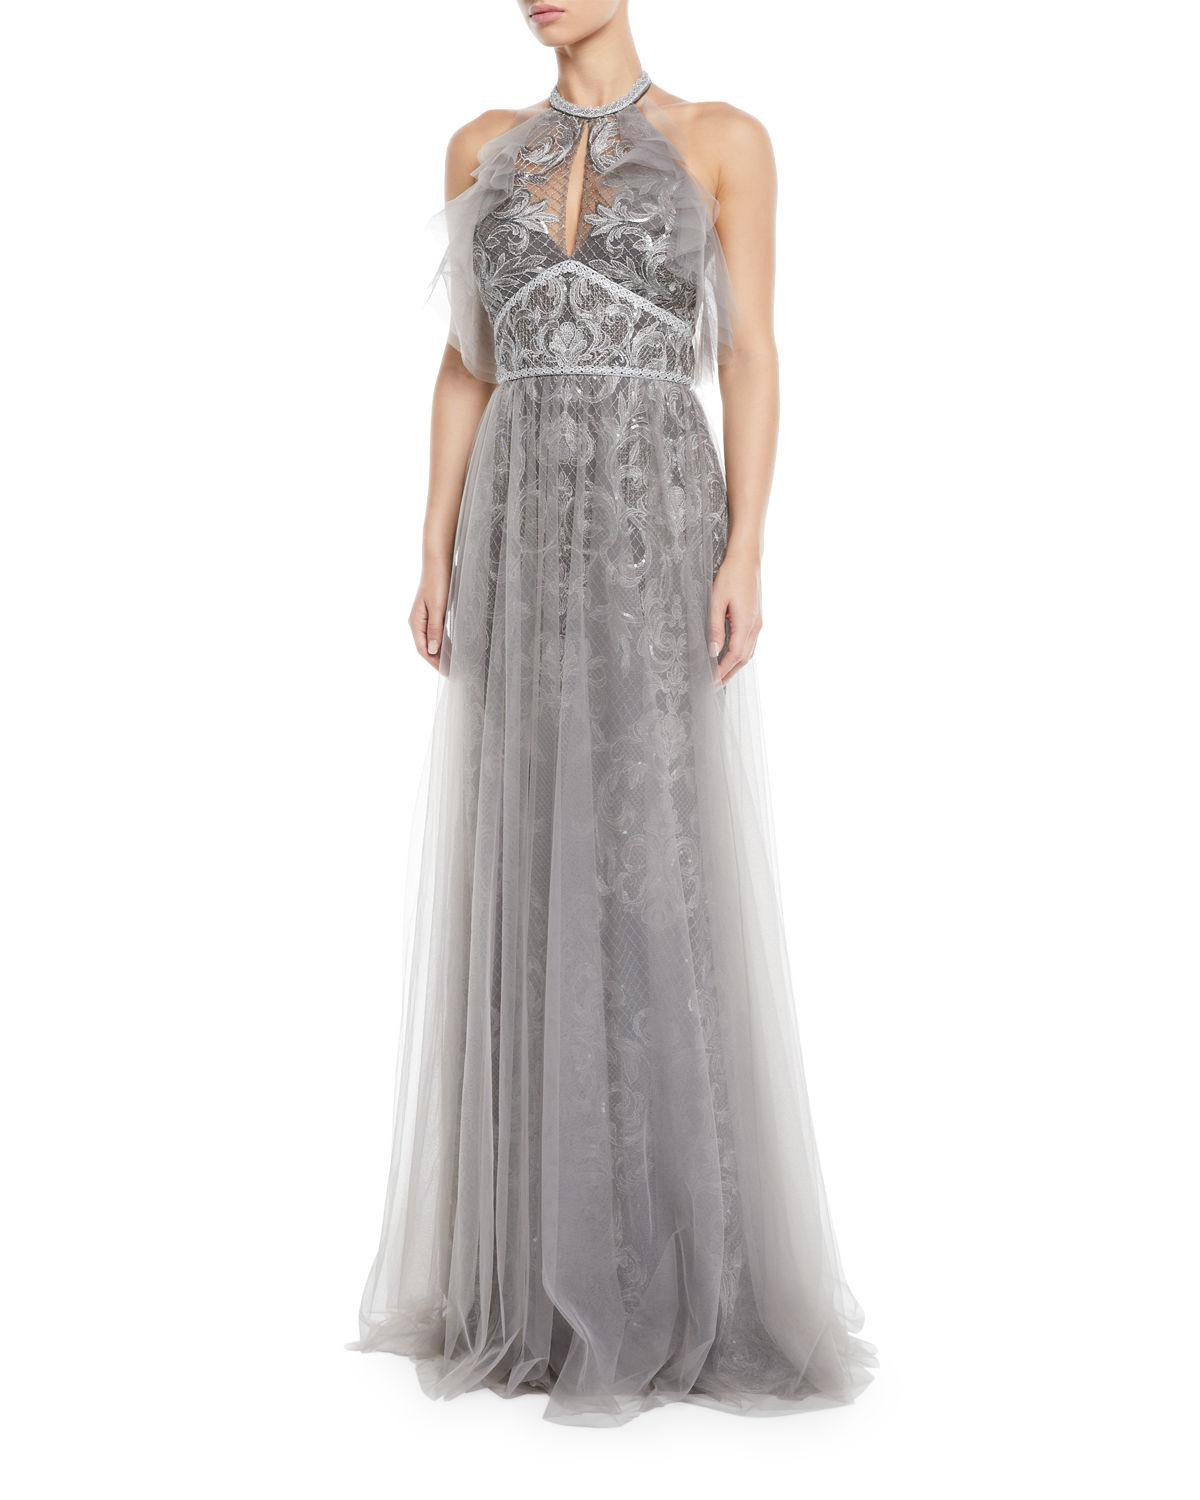 34af4772 Marchesa notte Embroidered Halter Gown W/ Tulle Skirt Overlay in ...